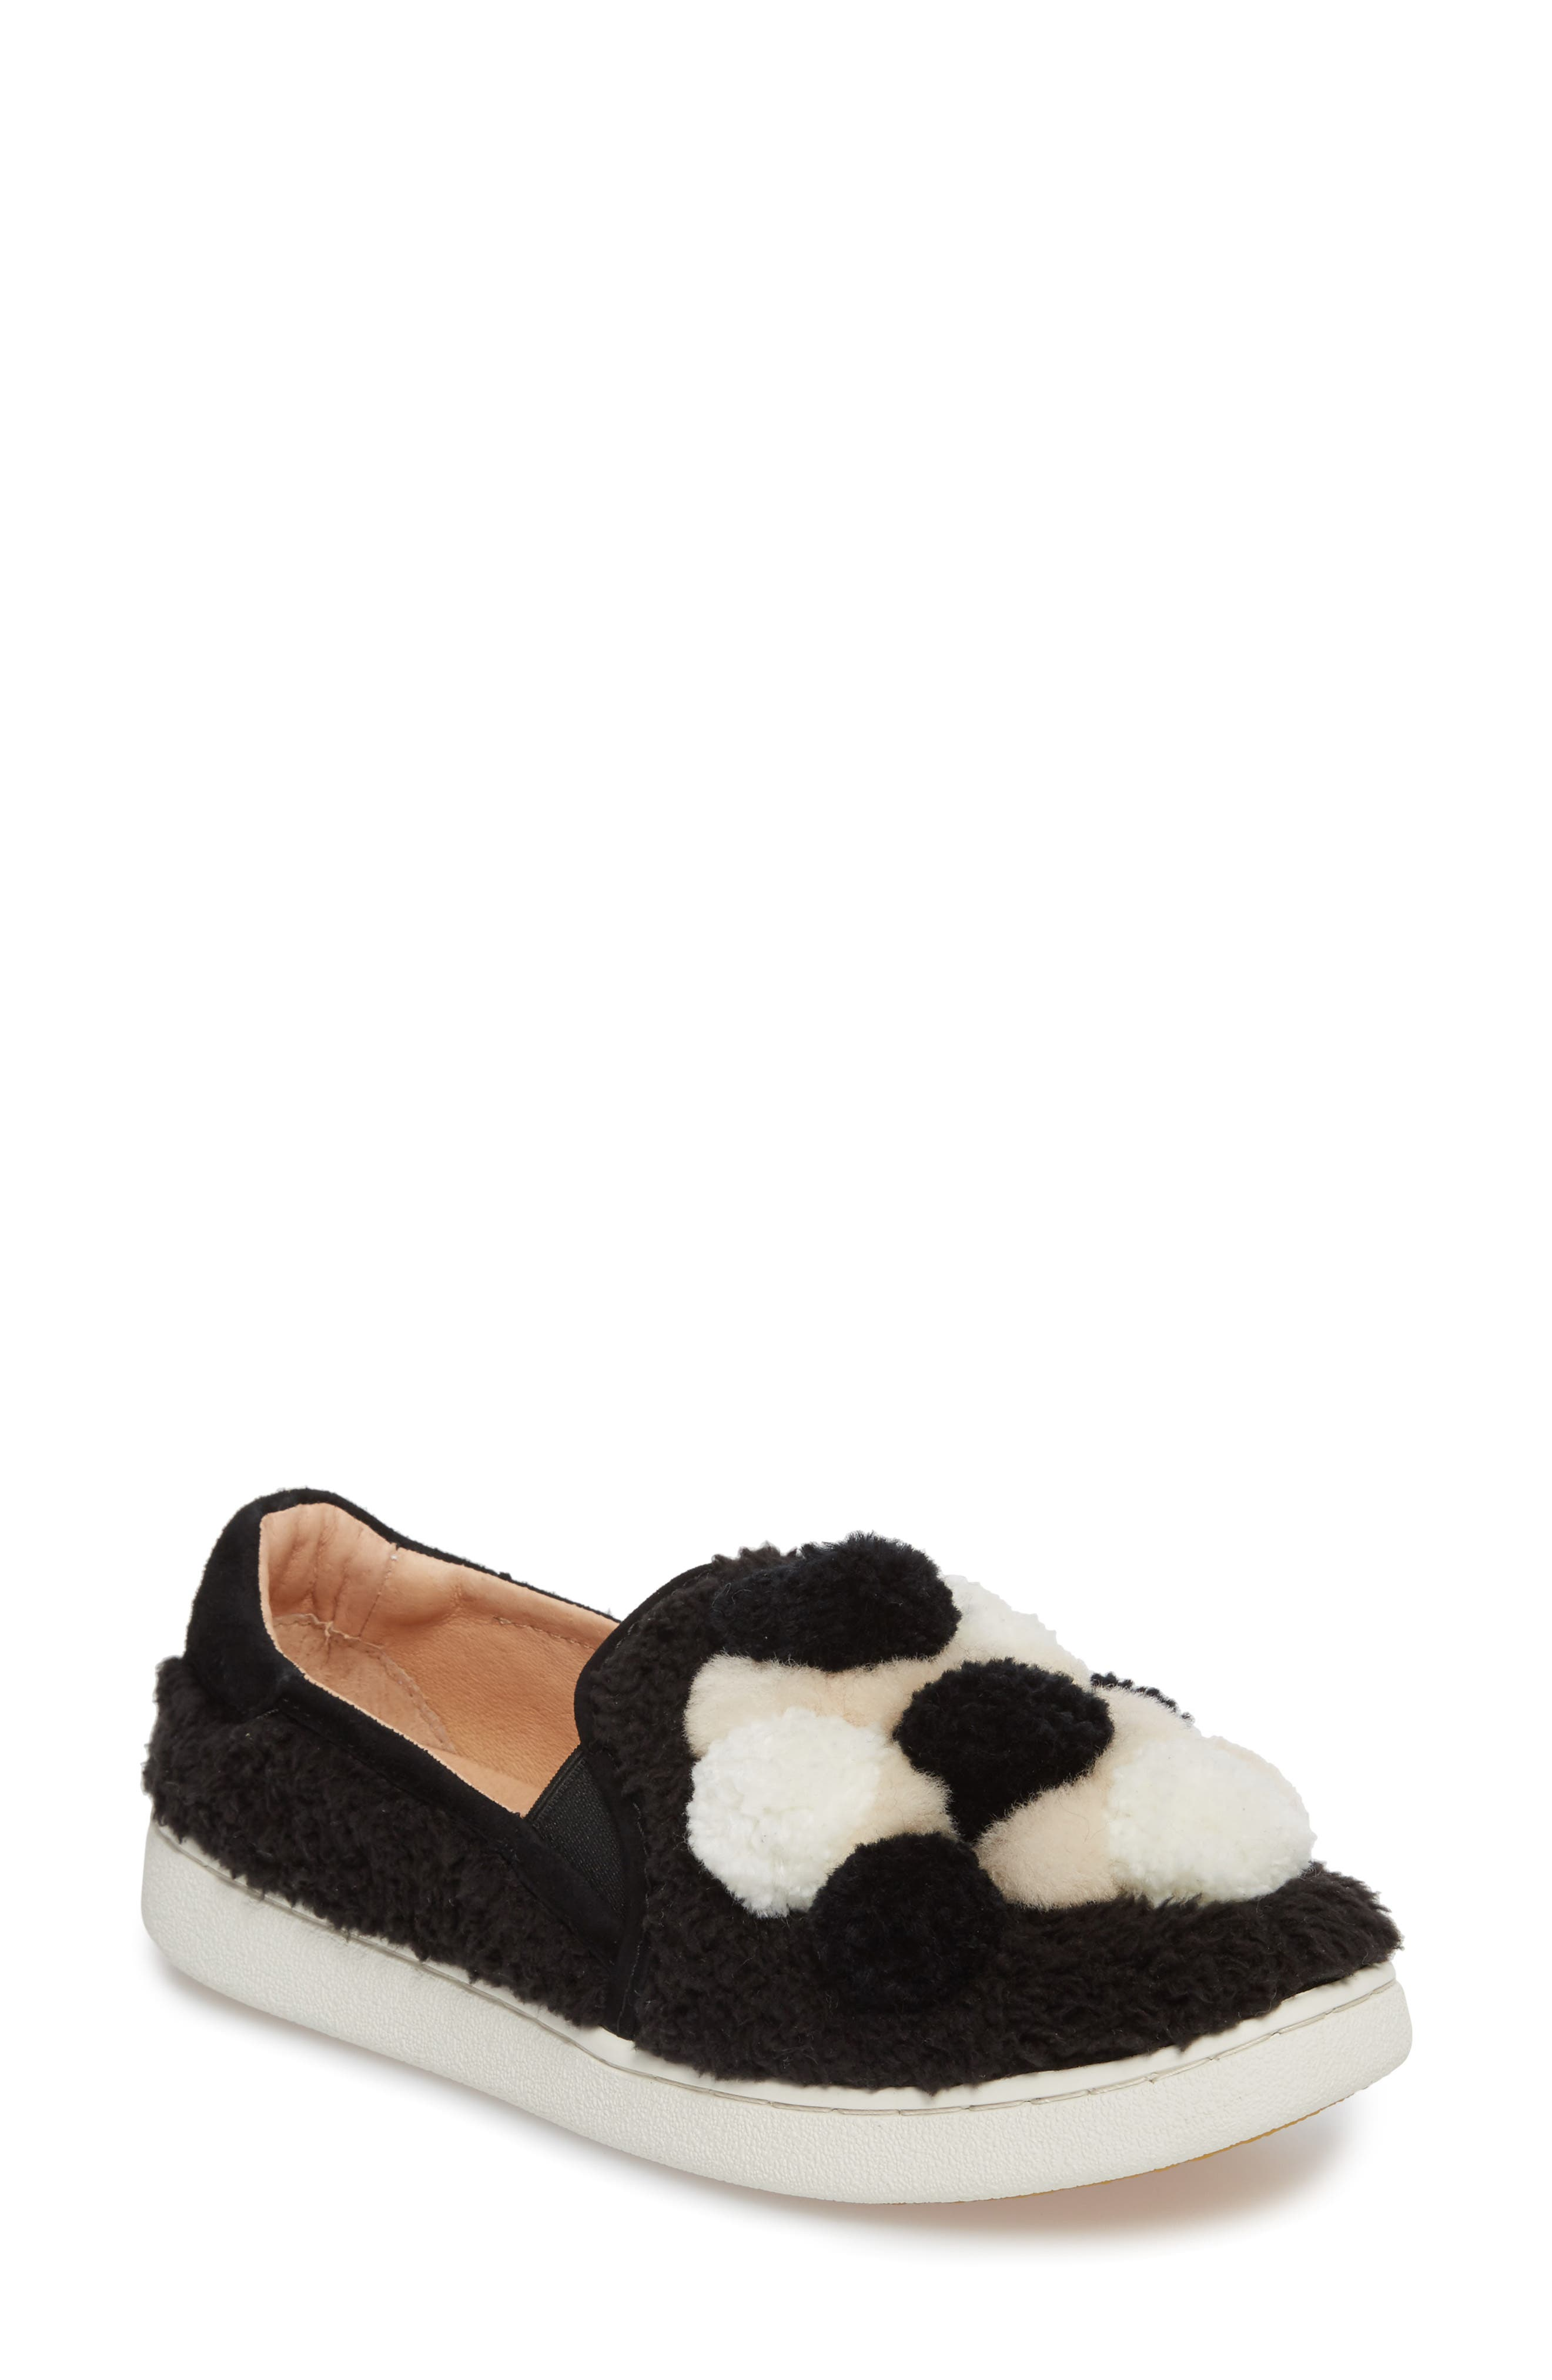 Ricci Plush Genuine Shearling Pompom Slip-On Sneaker,                             Main thumbnail 1, color,                             Black